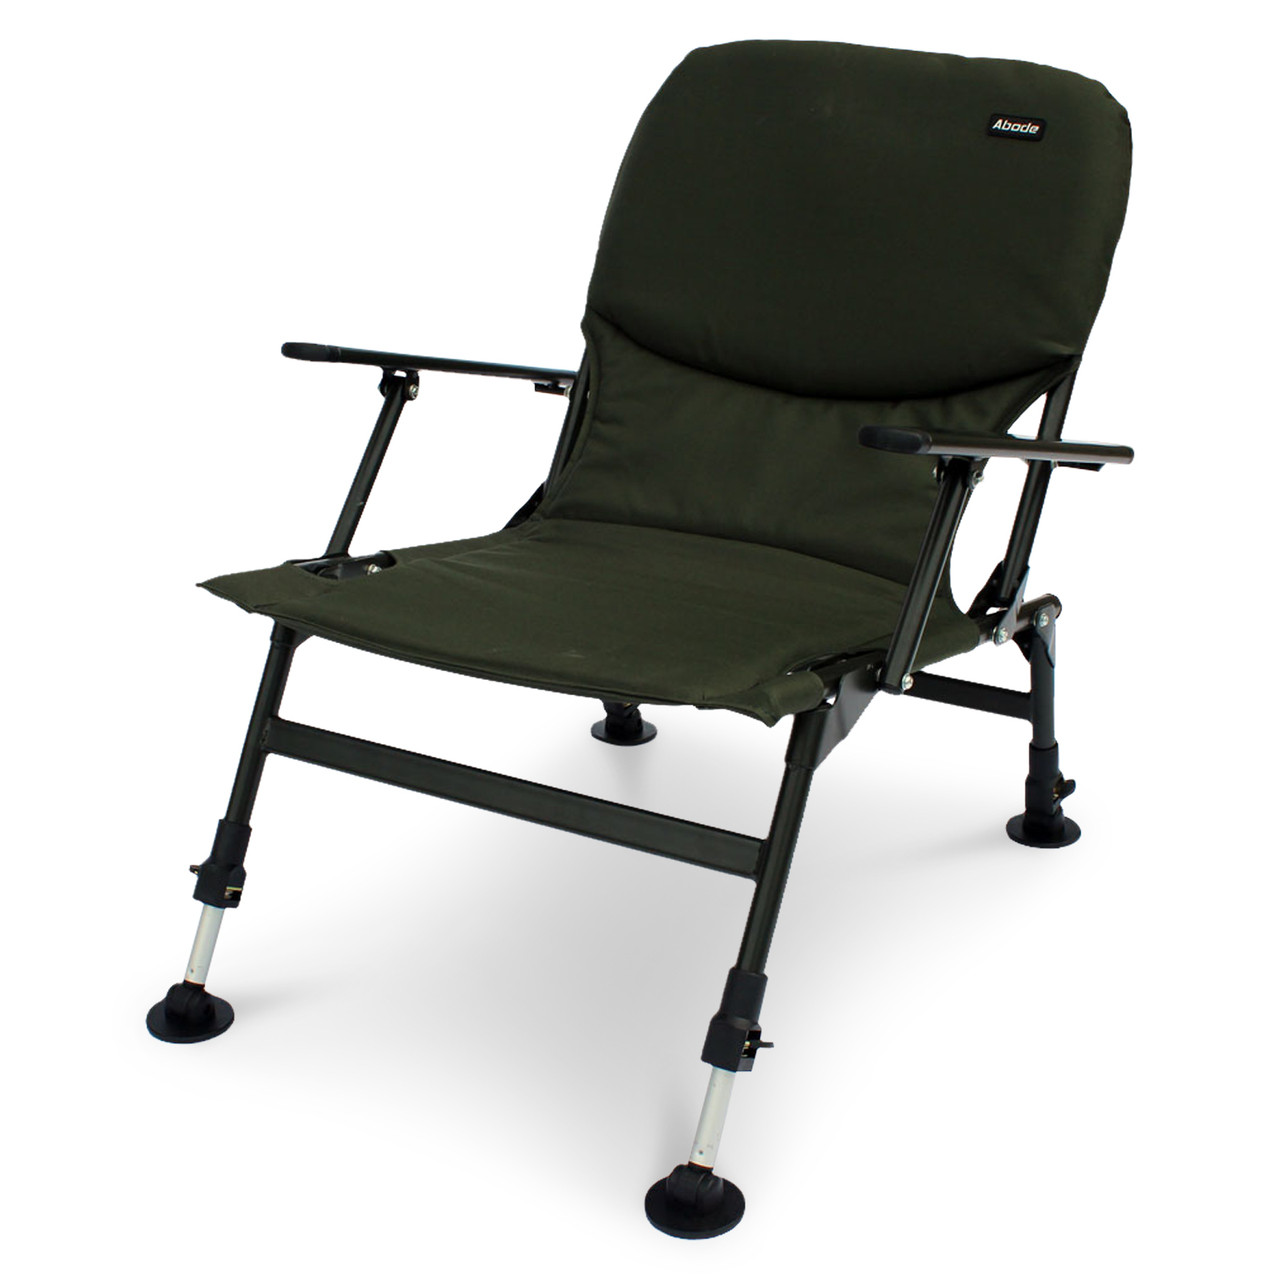 fishing chair with arms best computer chairs for gaming abode easy arm carp camping folding